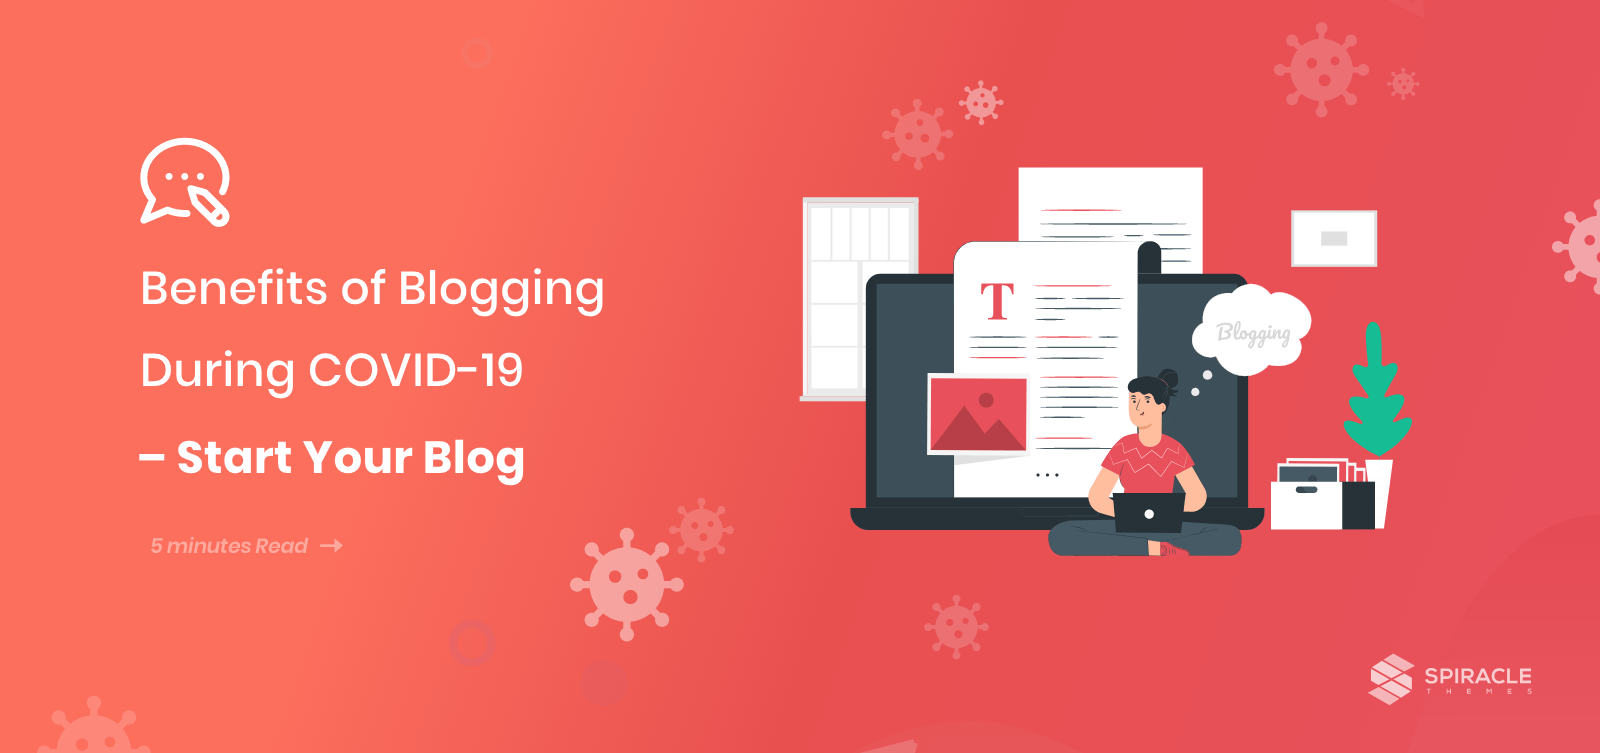 Benefits of Blogging During COVID-19